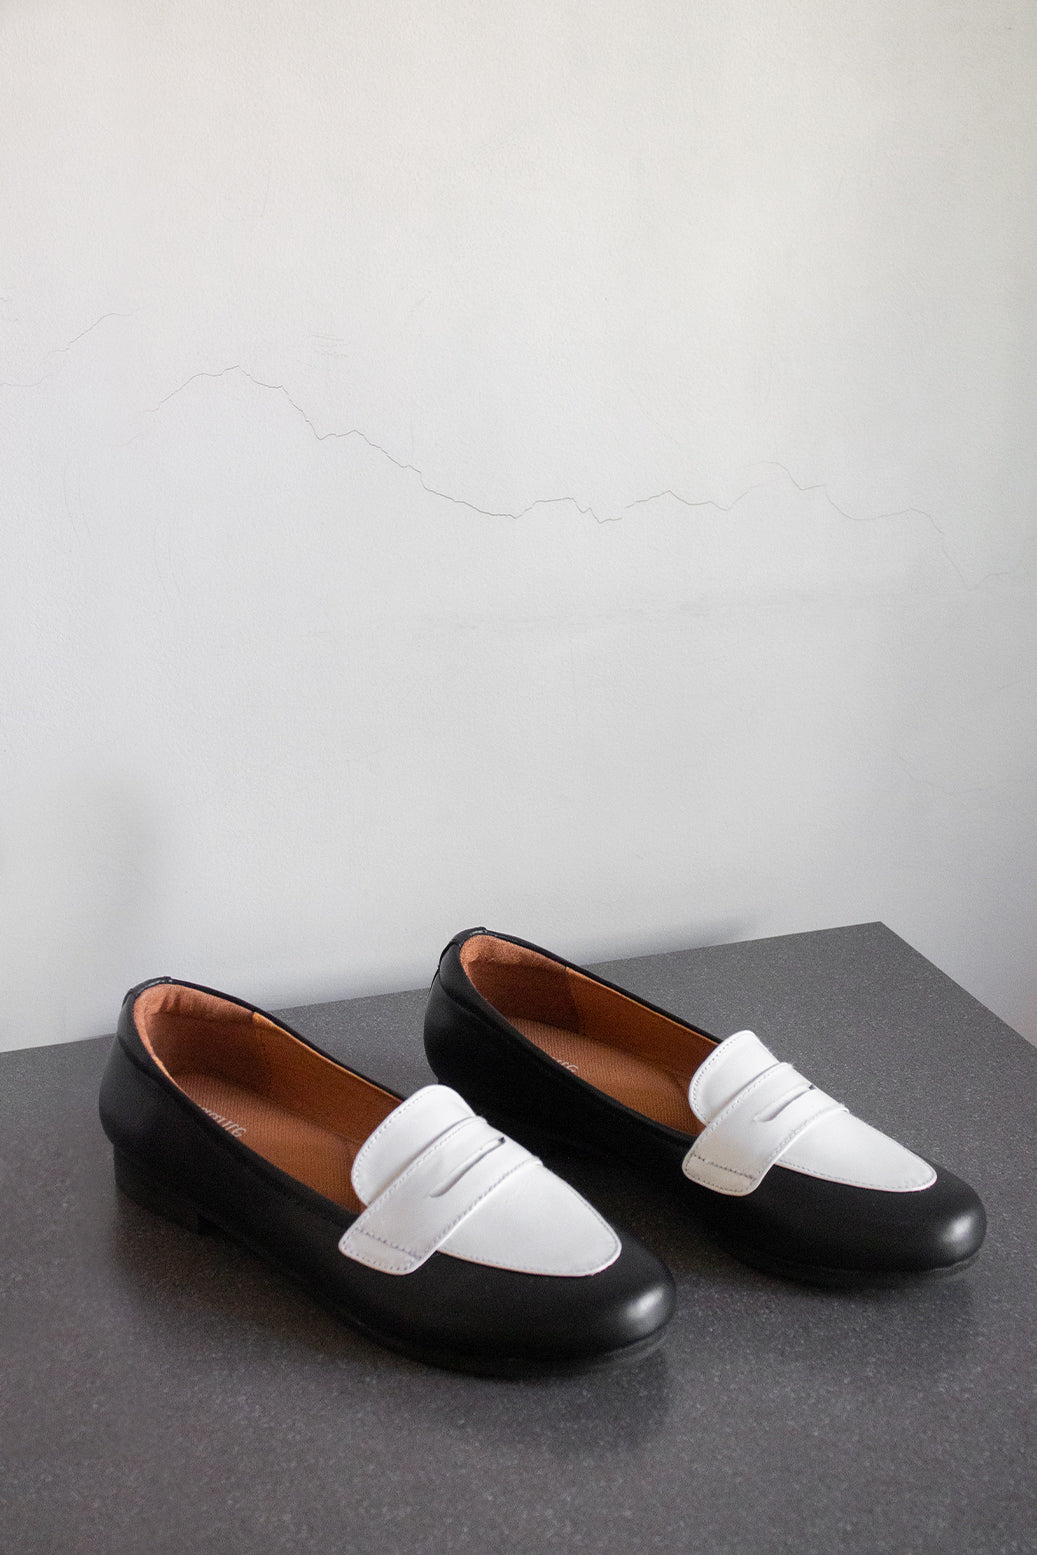 The Penny Loafer in Black & White